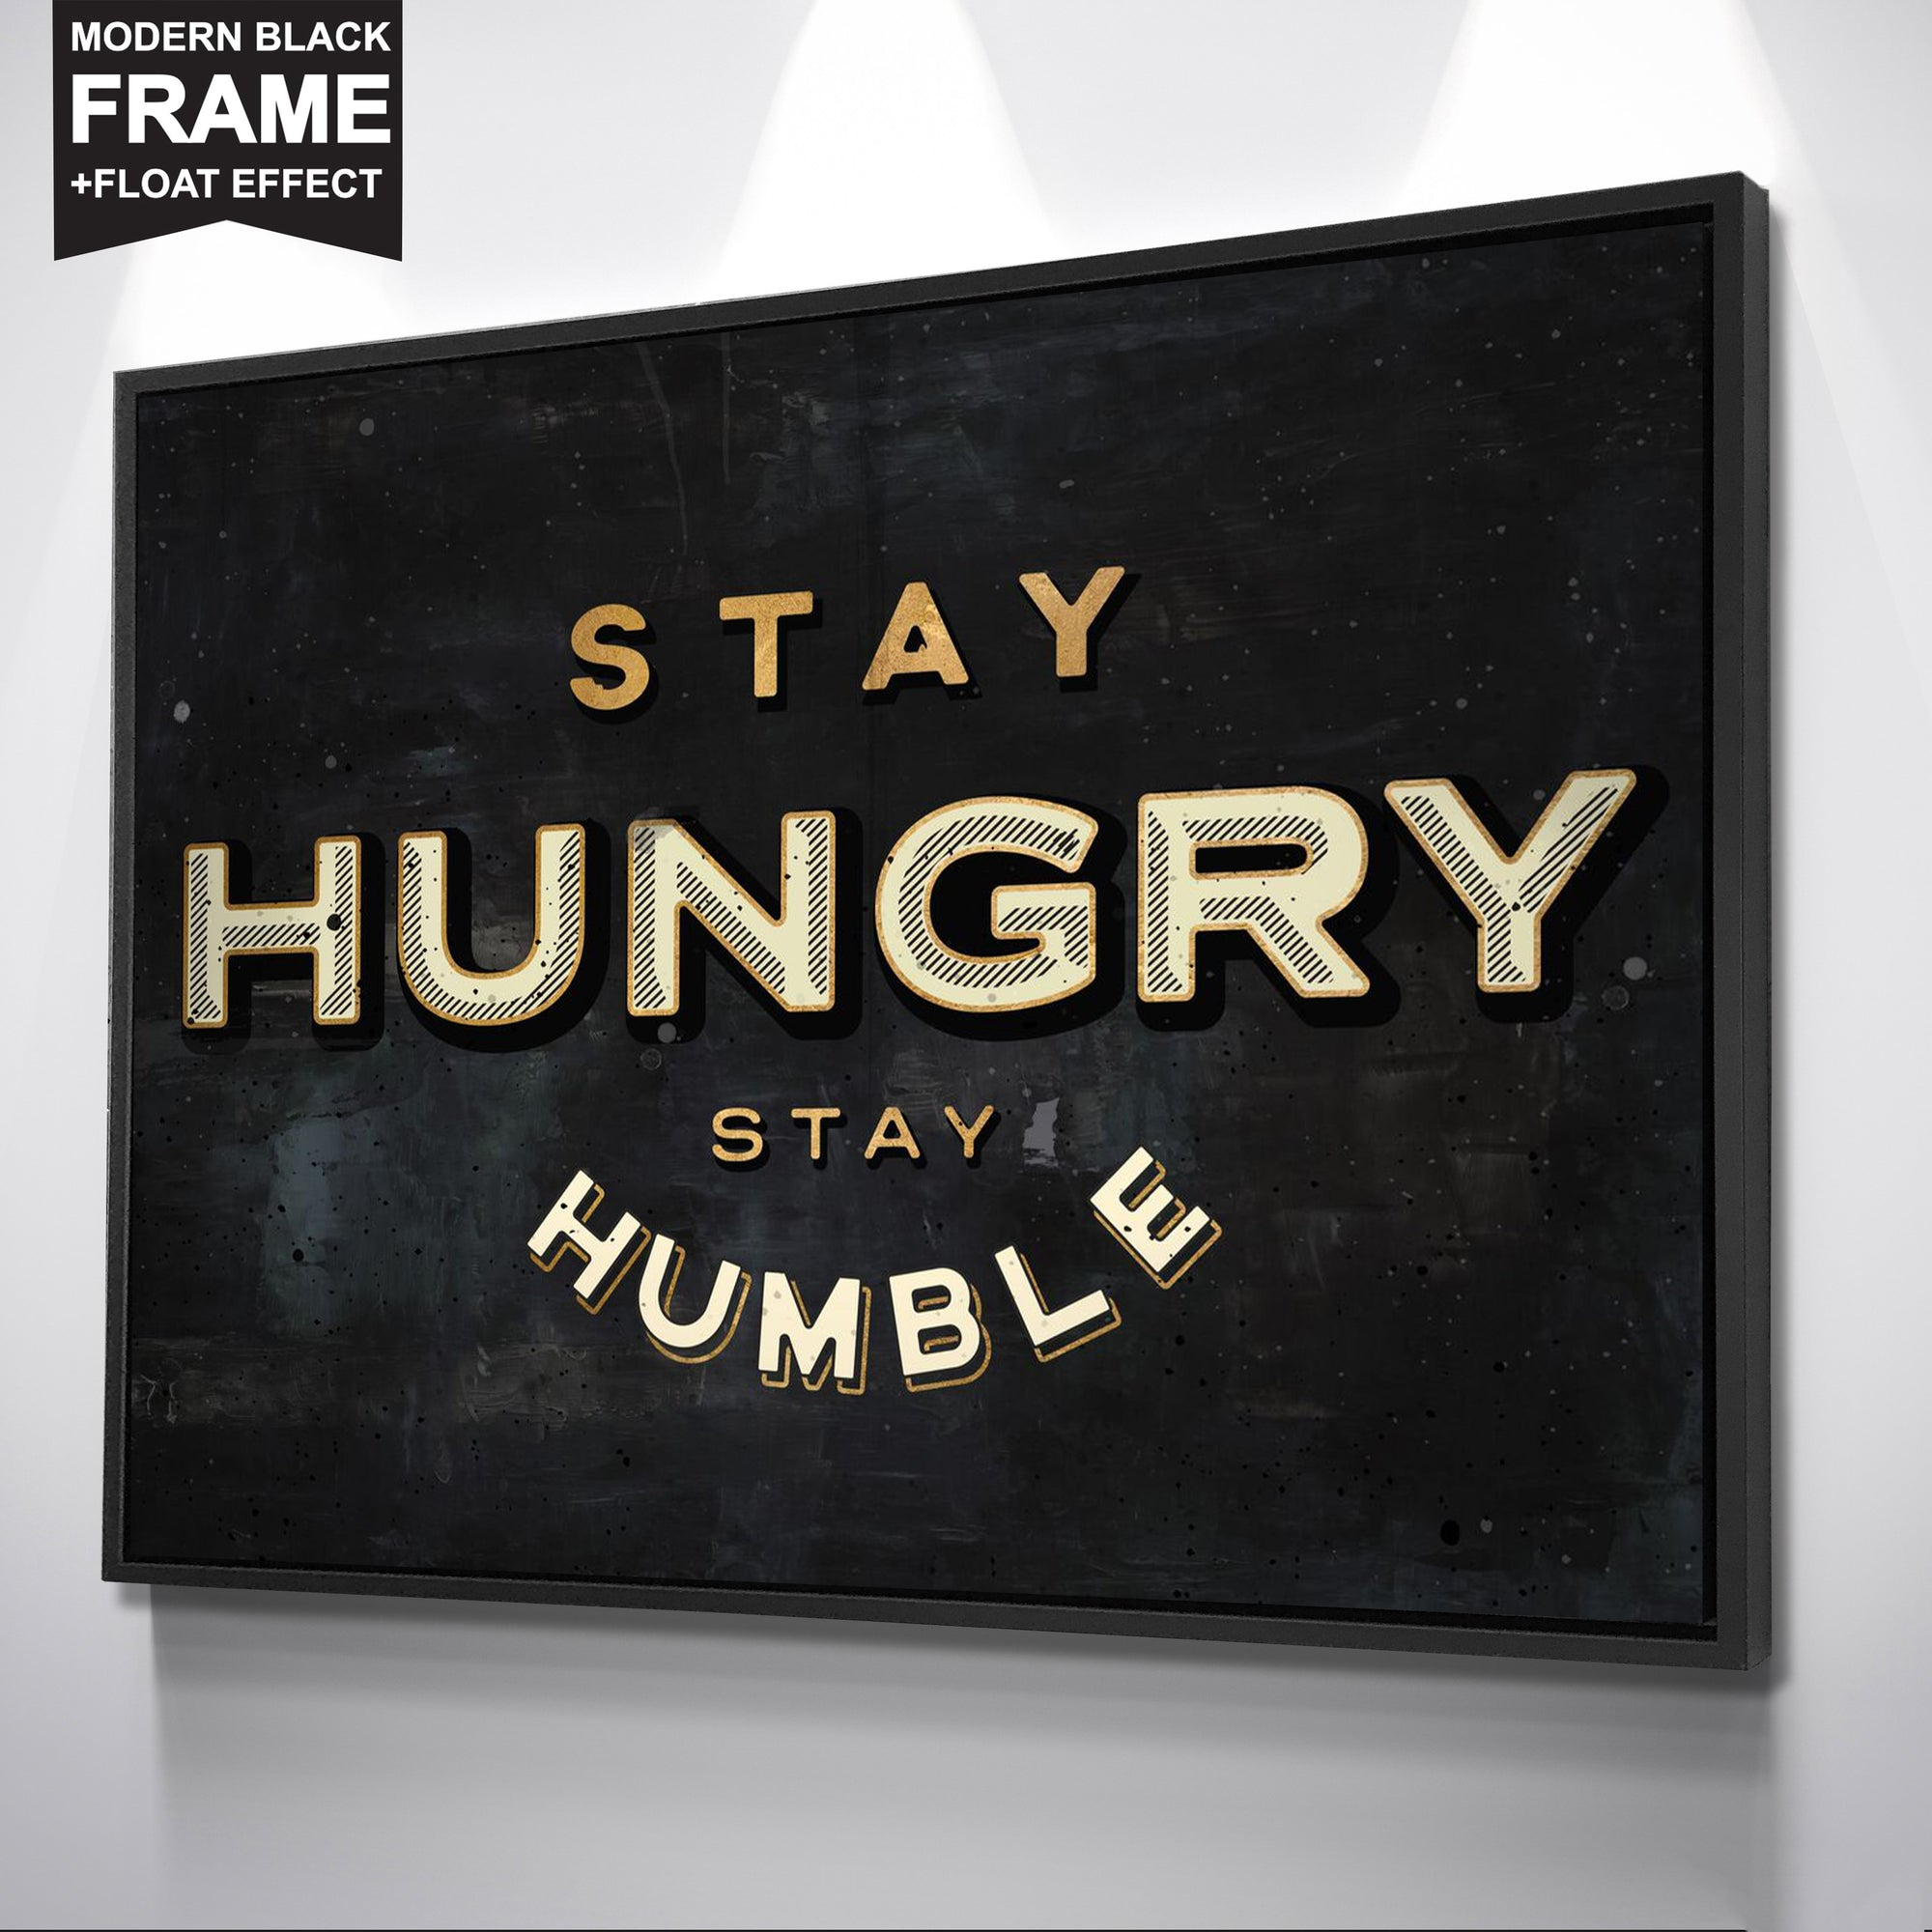 STAY HUNGRY. STAY HUMBLE.